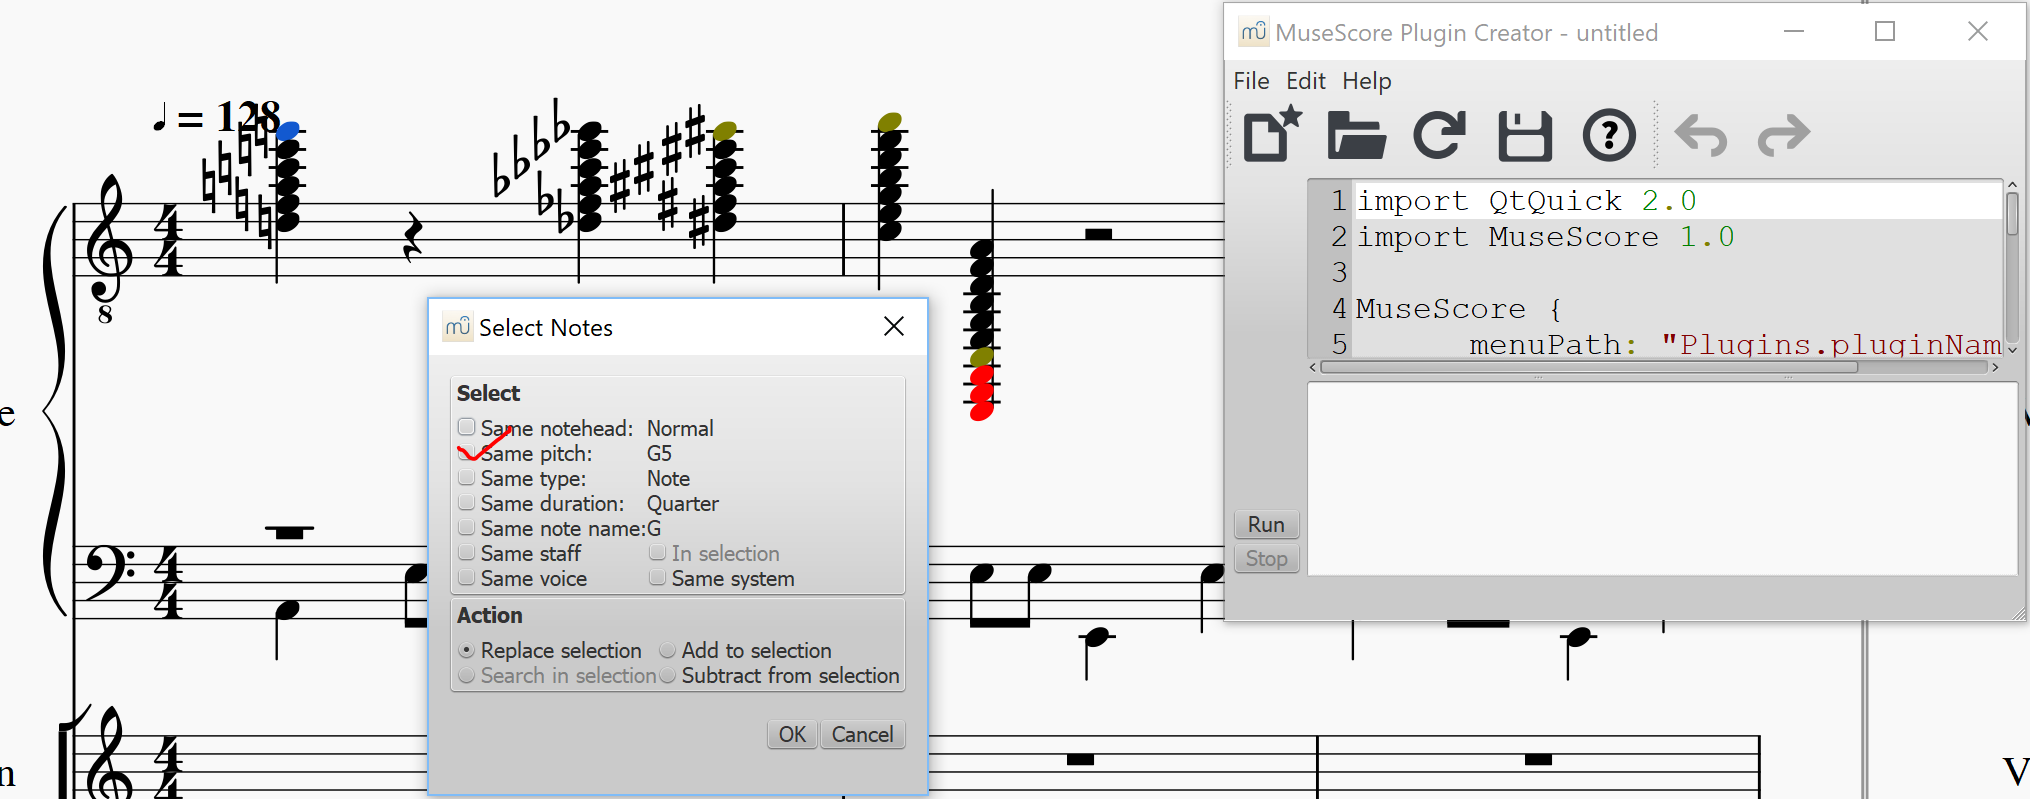 Score mirroring in right-to-left languages   MuseScore